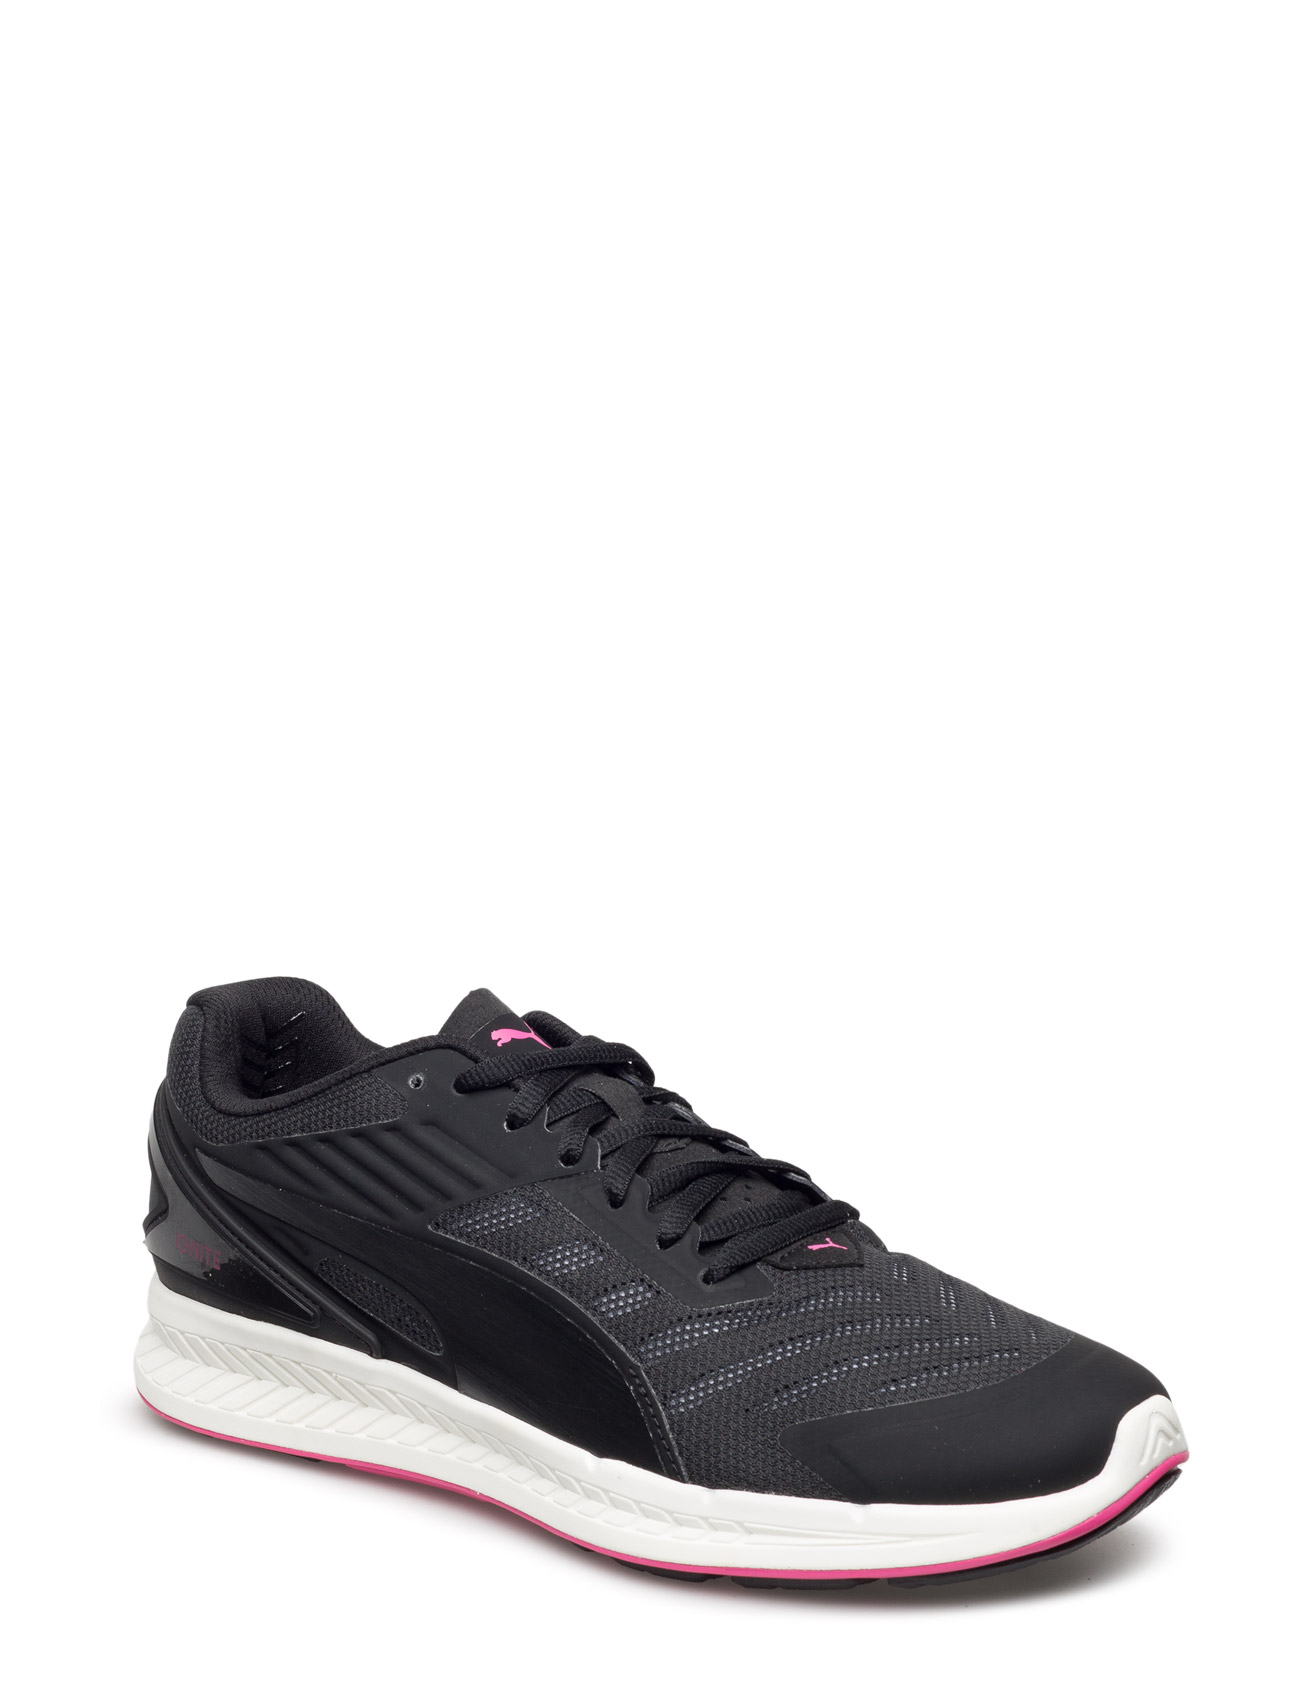 Official men's shoes Running Shoes Puma San Francisco Online